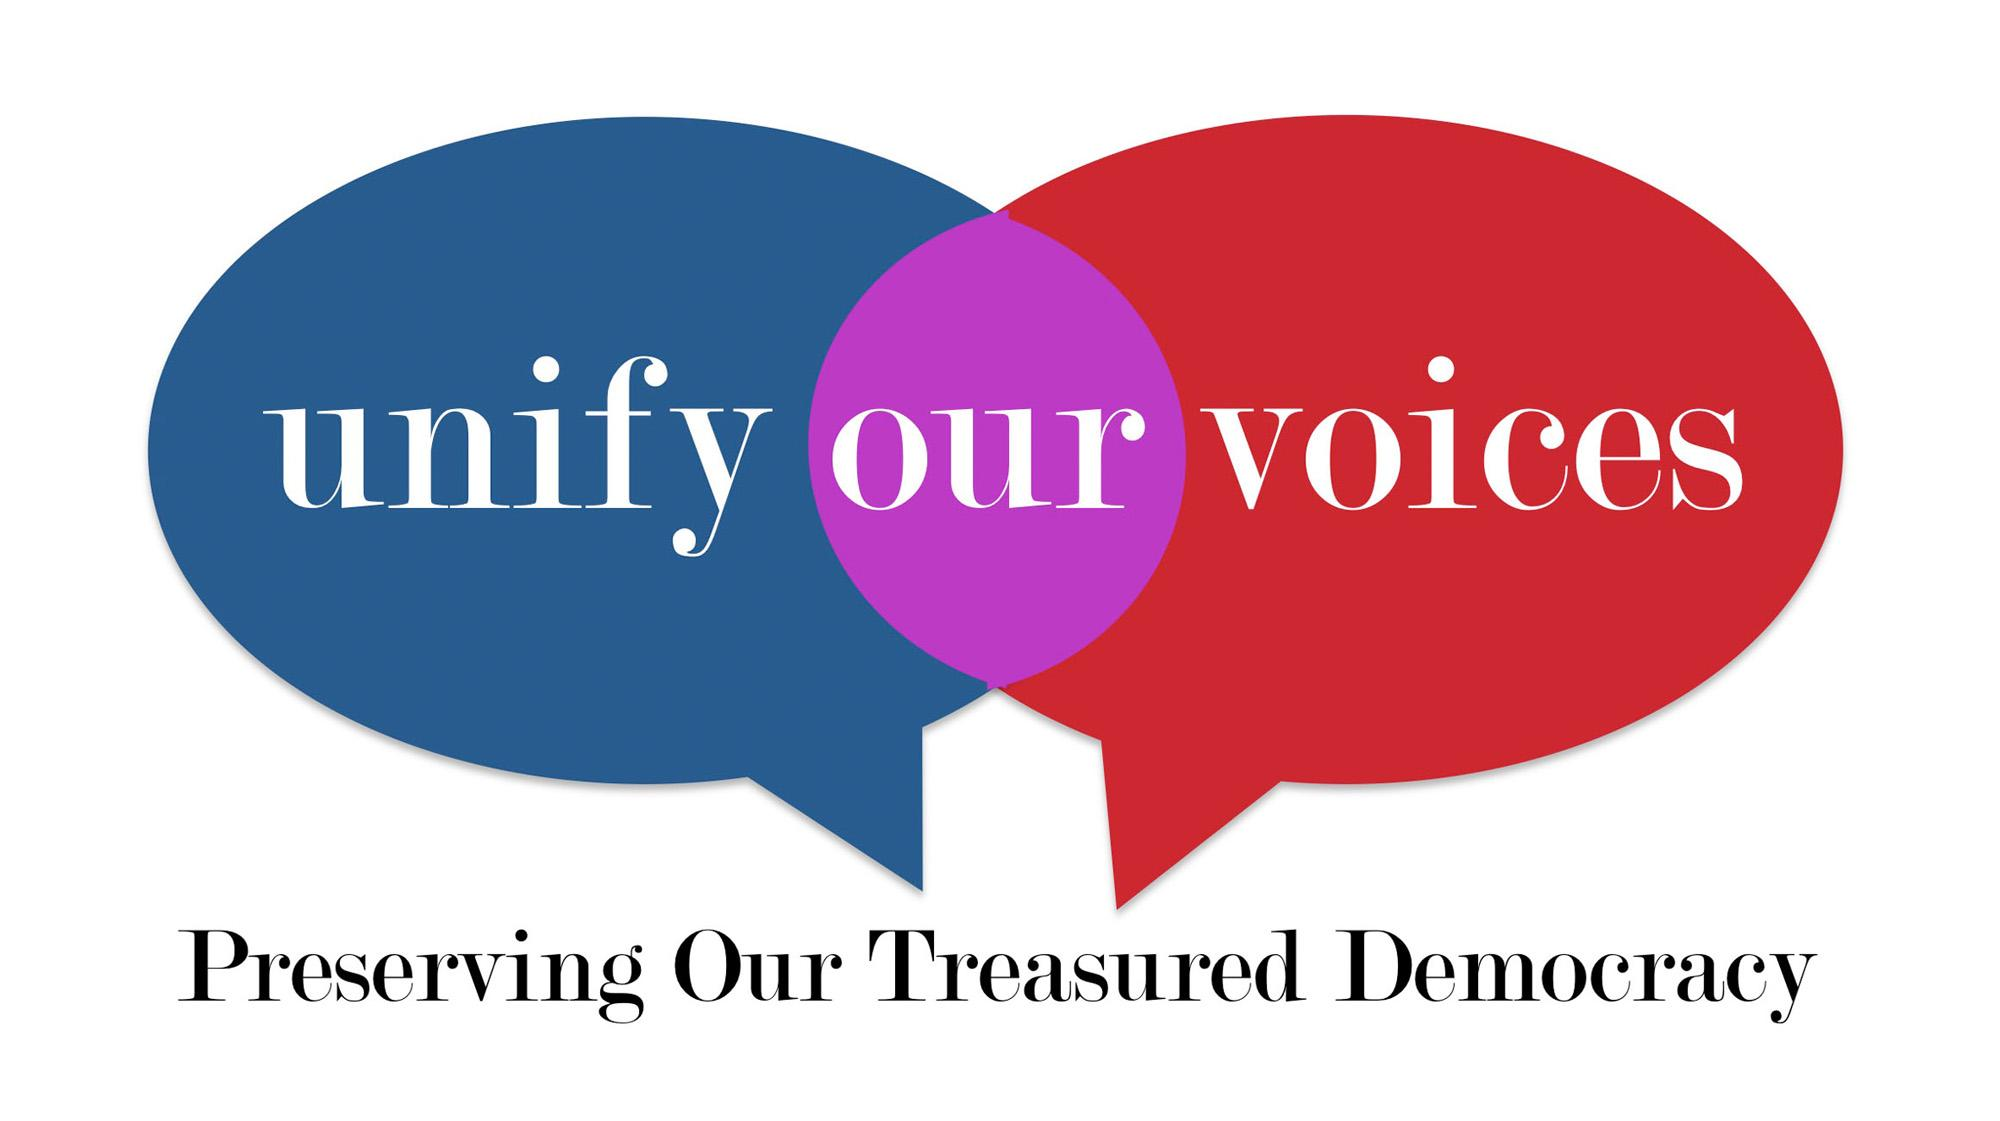 Preserving Our Treasured Democracy - Unify Ou